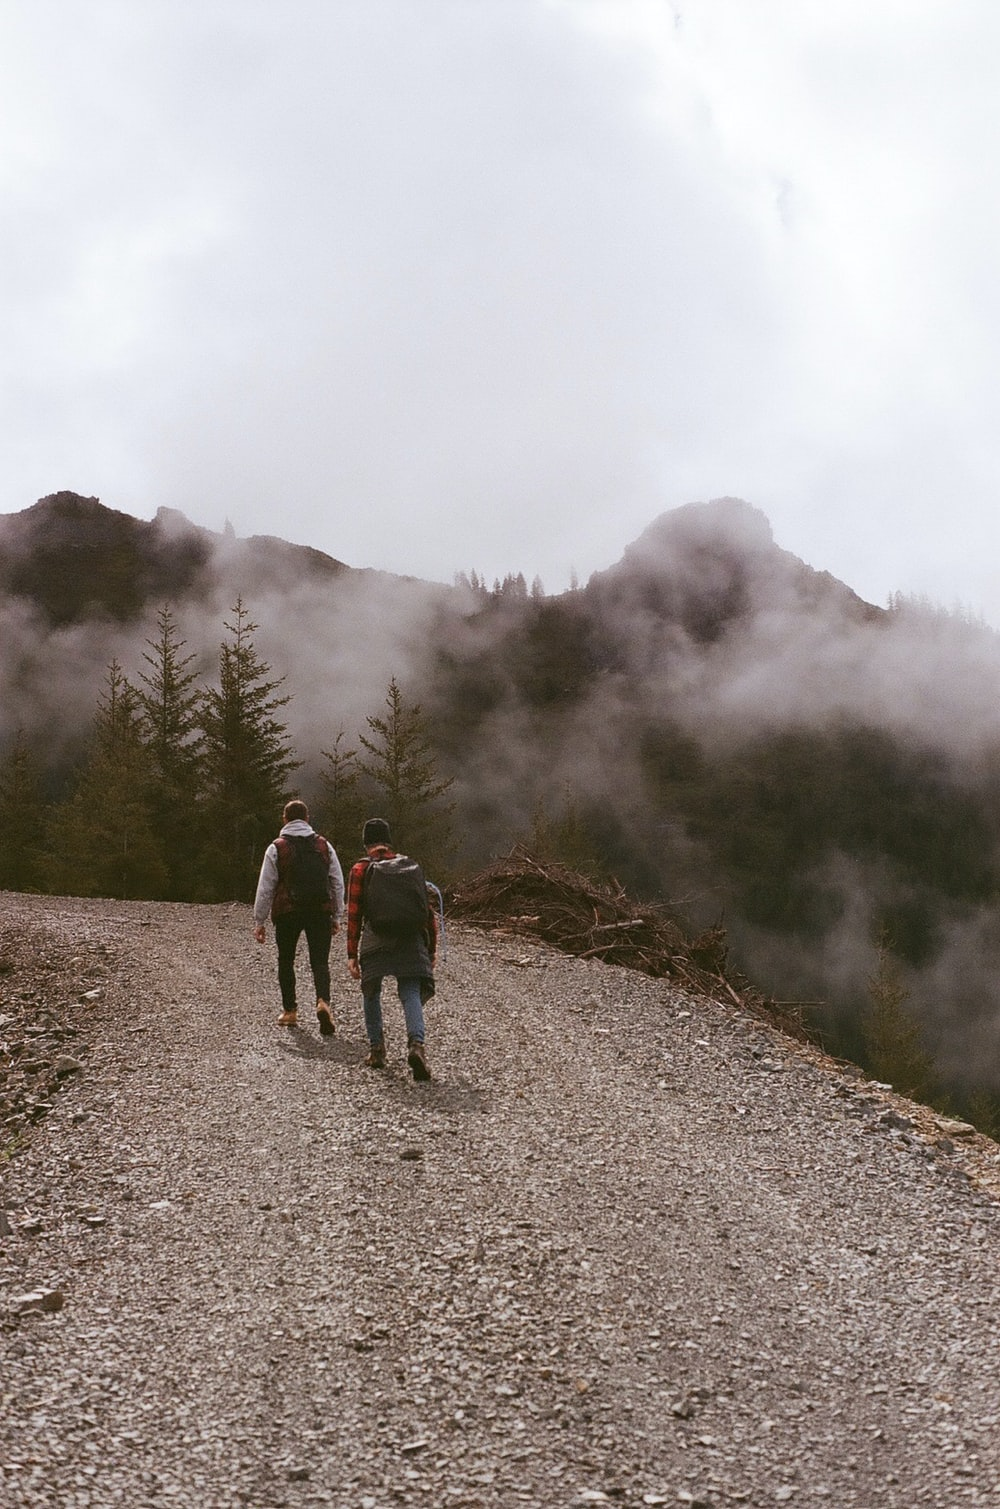 3 people walking on dirt road near foggy mountain during daytime